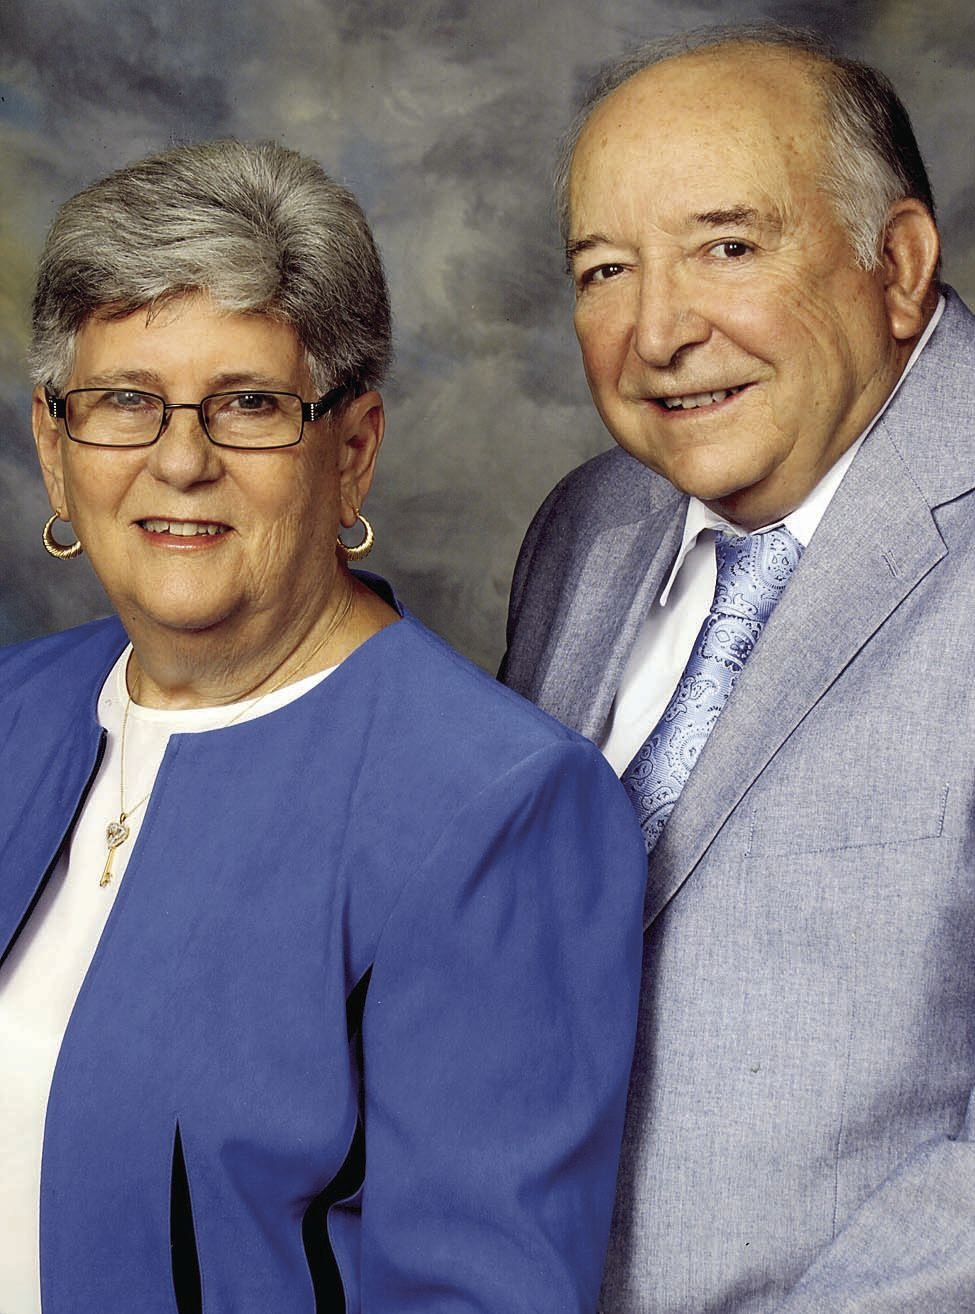 ALLEN AND SHIRLEY SPARKS CARTER